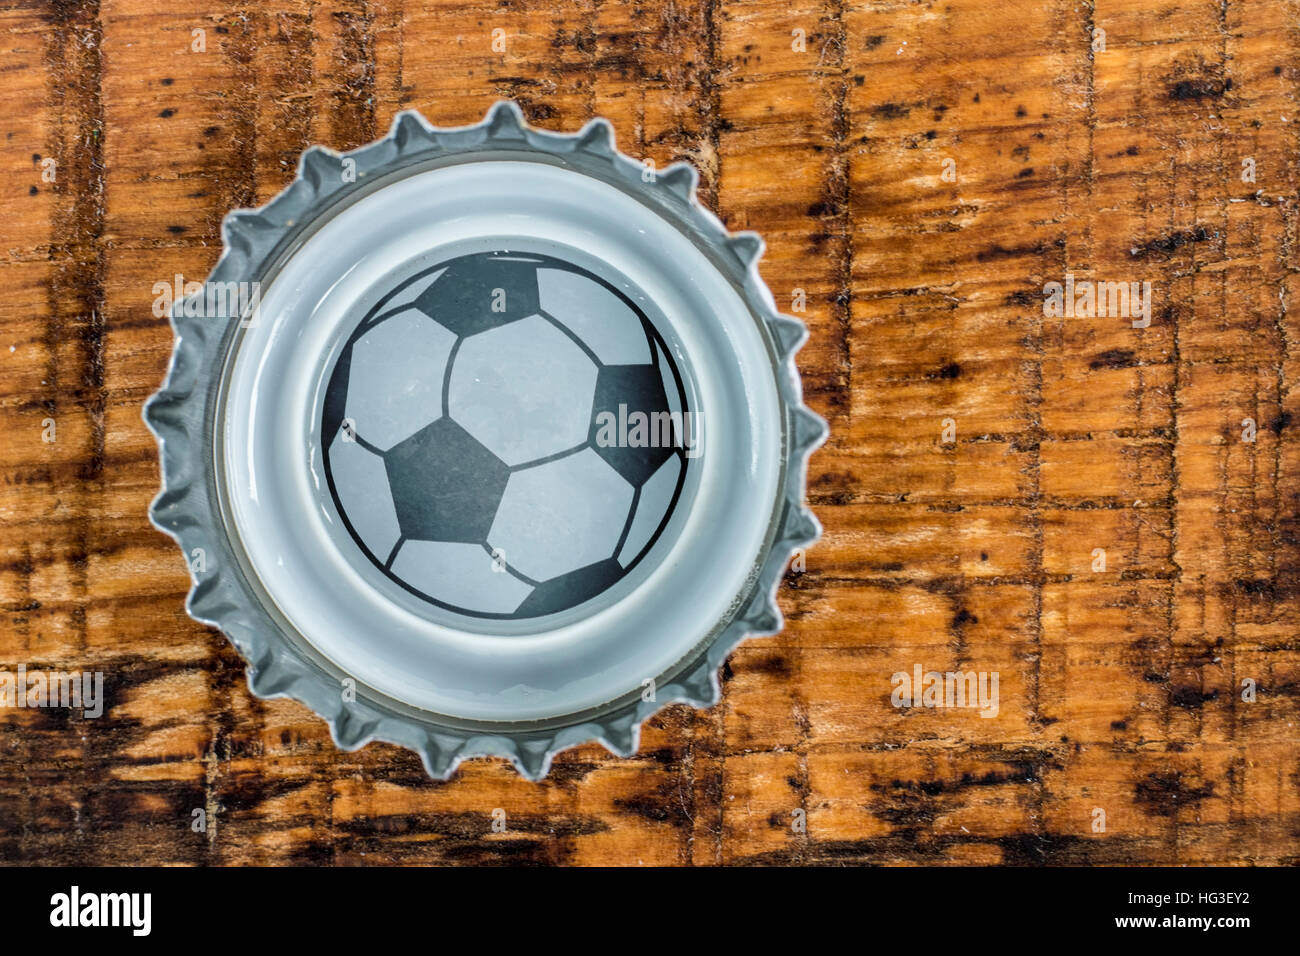 Football in a crown cork - Stock Image